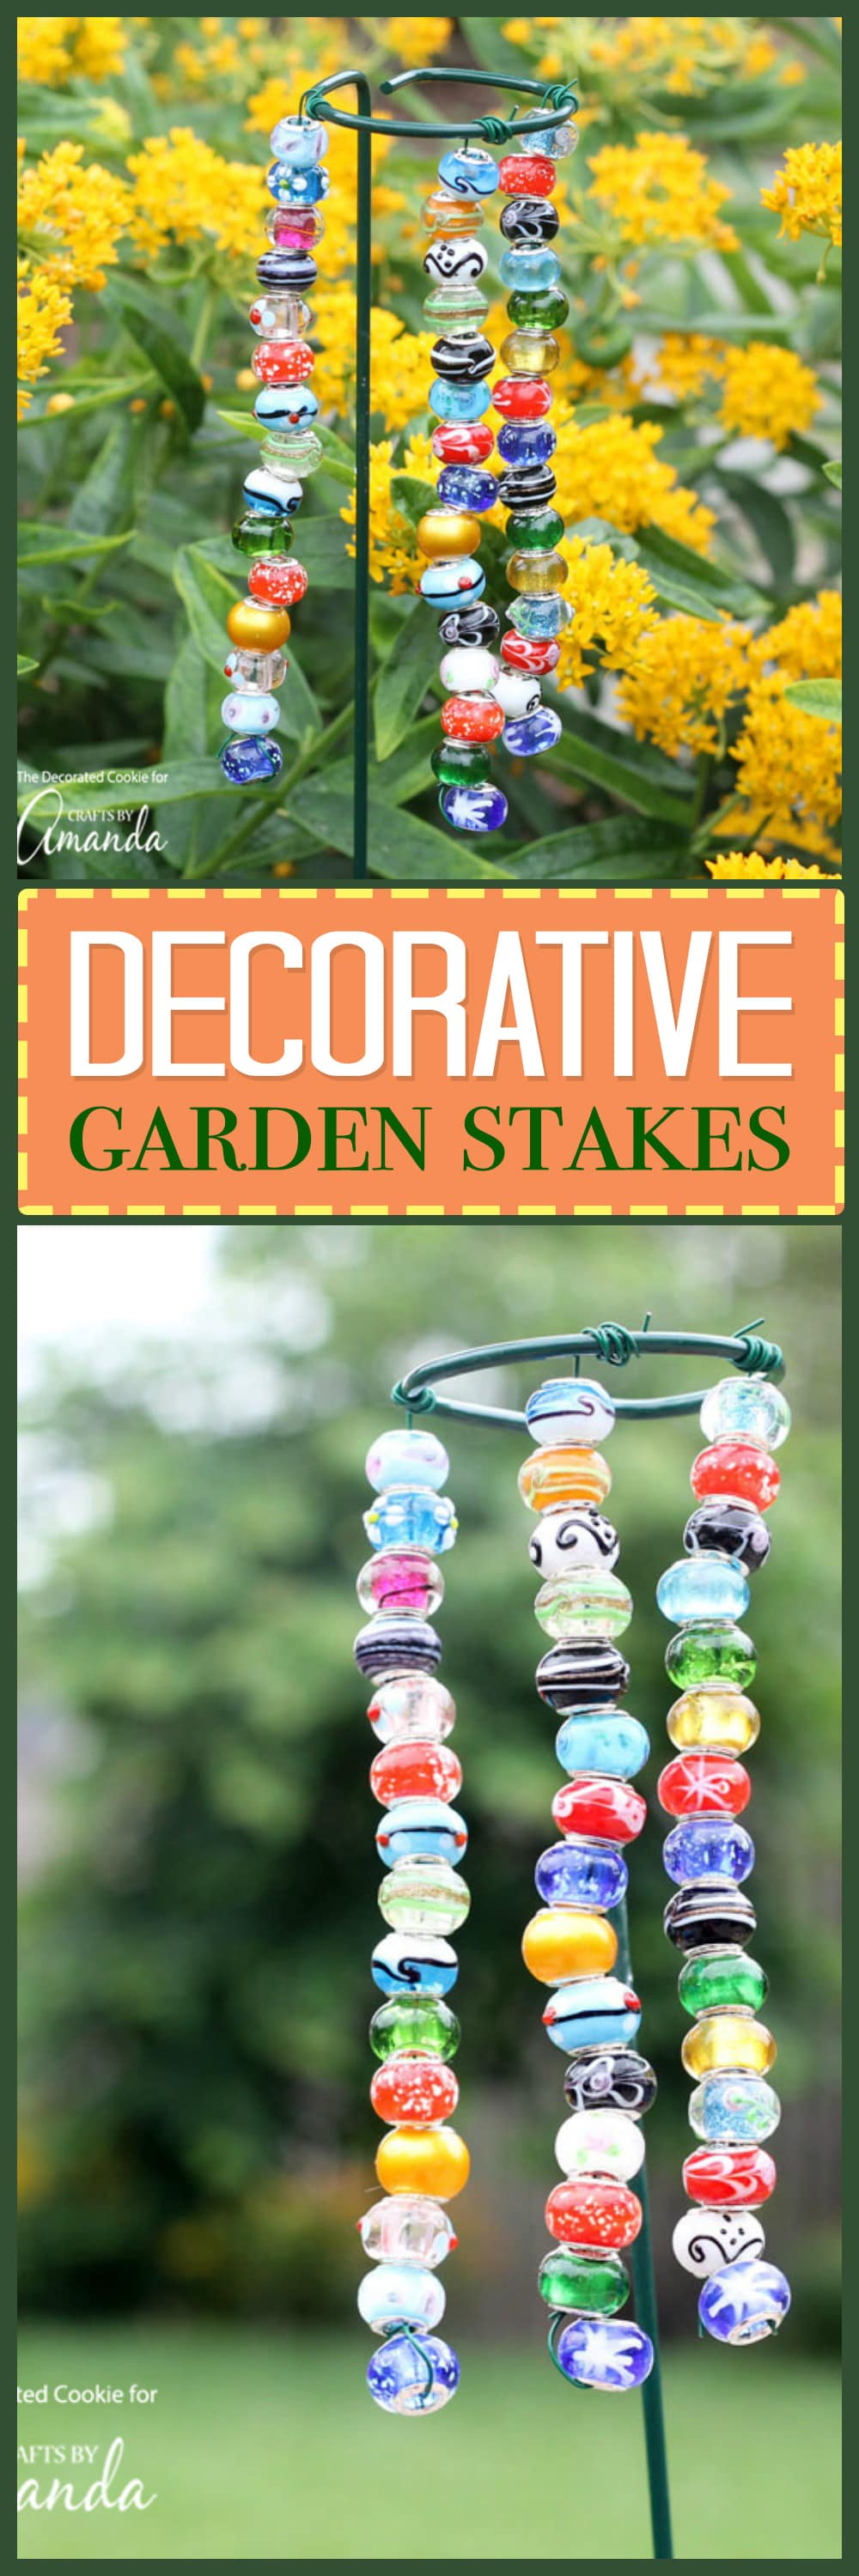 These easy decorative garden stakes are kid-friendly, budget-friendly, and super-easy to make. They're a beautiful addition to your yard or garden.